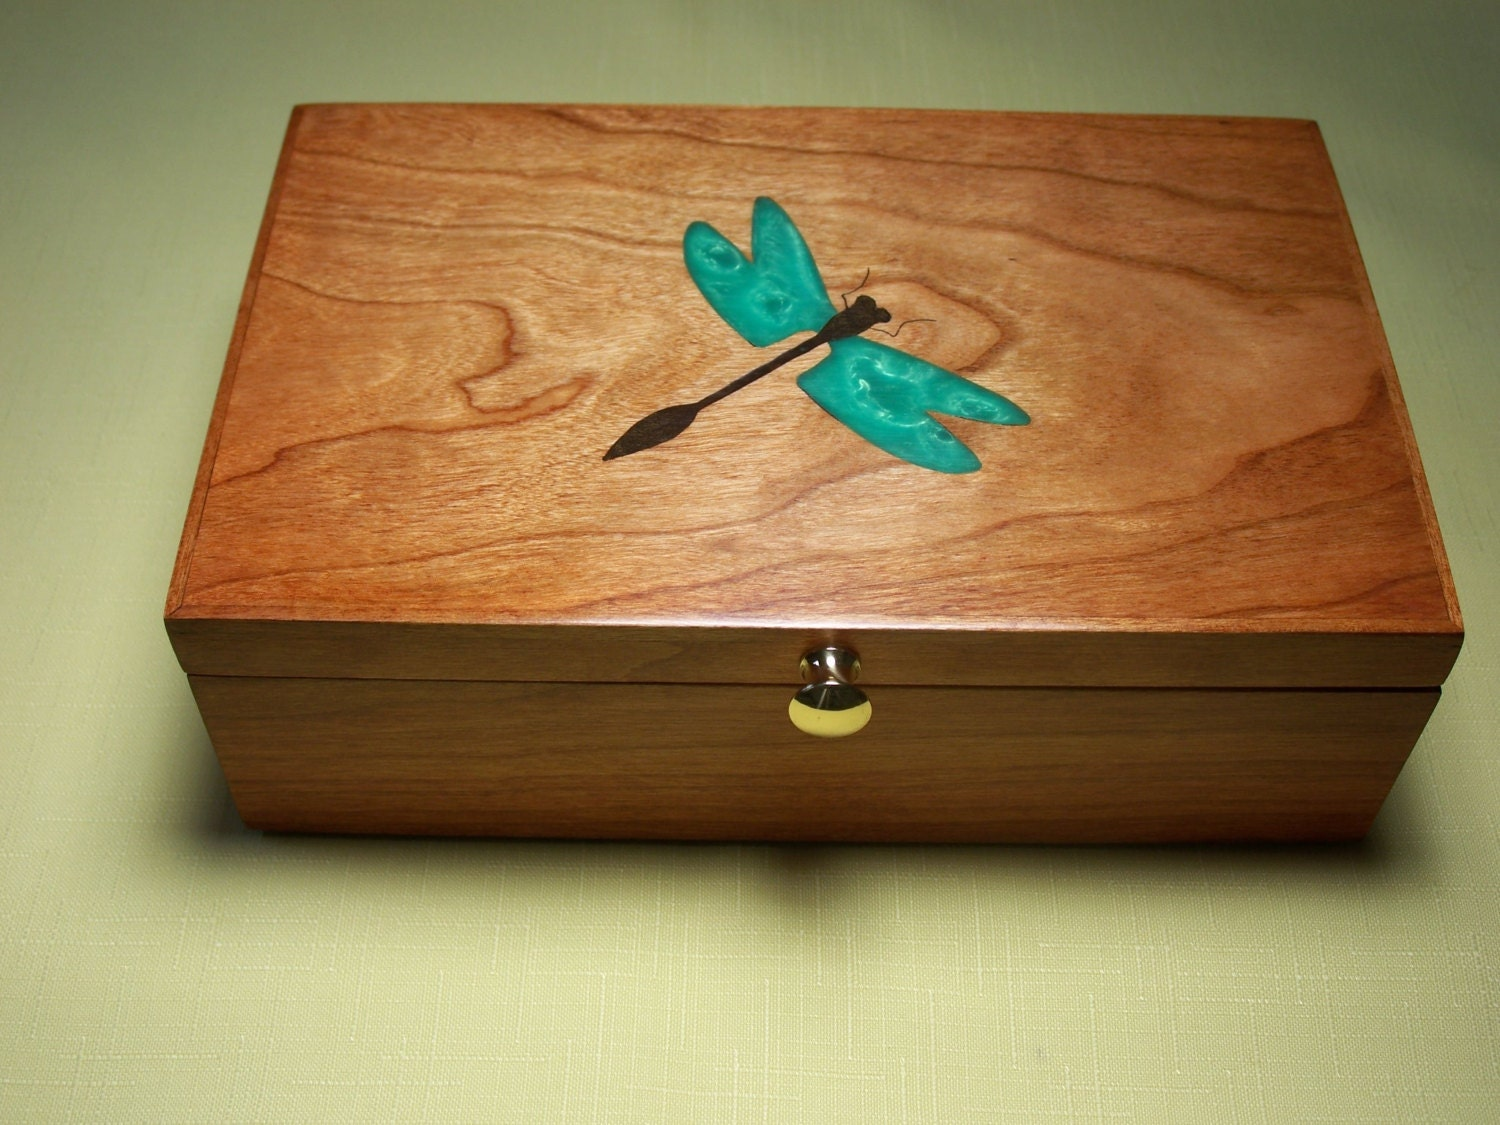 Box Dragonfly Inlay Cherry Wood Custom Item